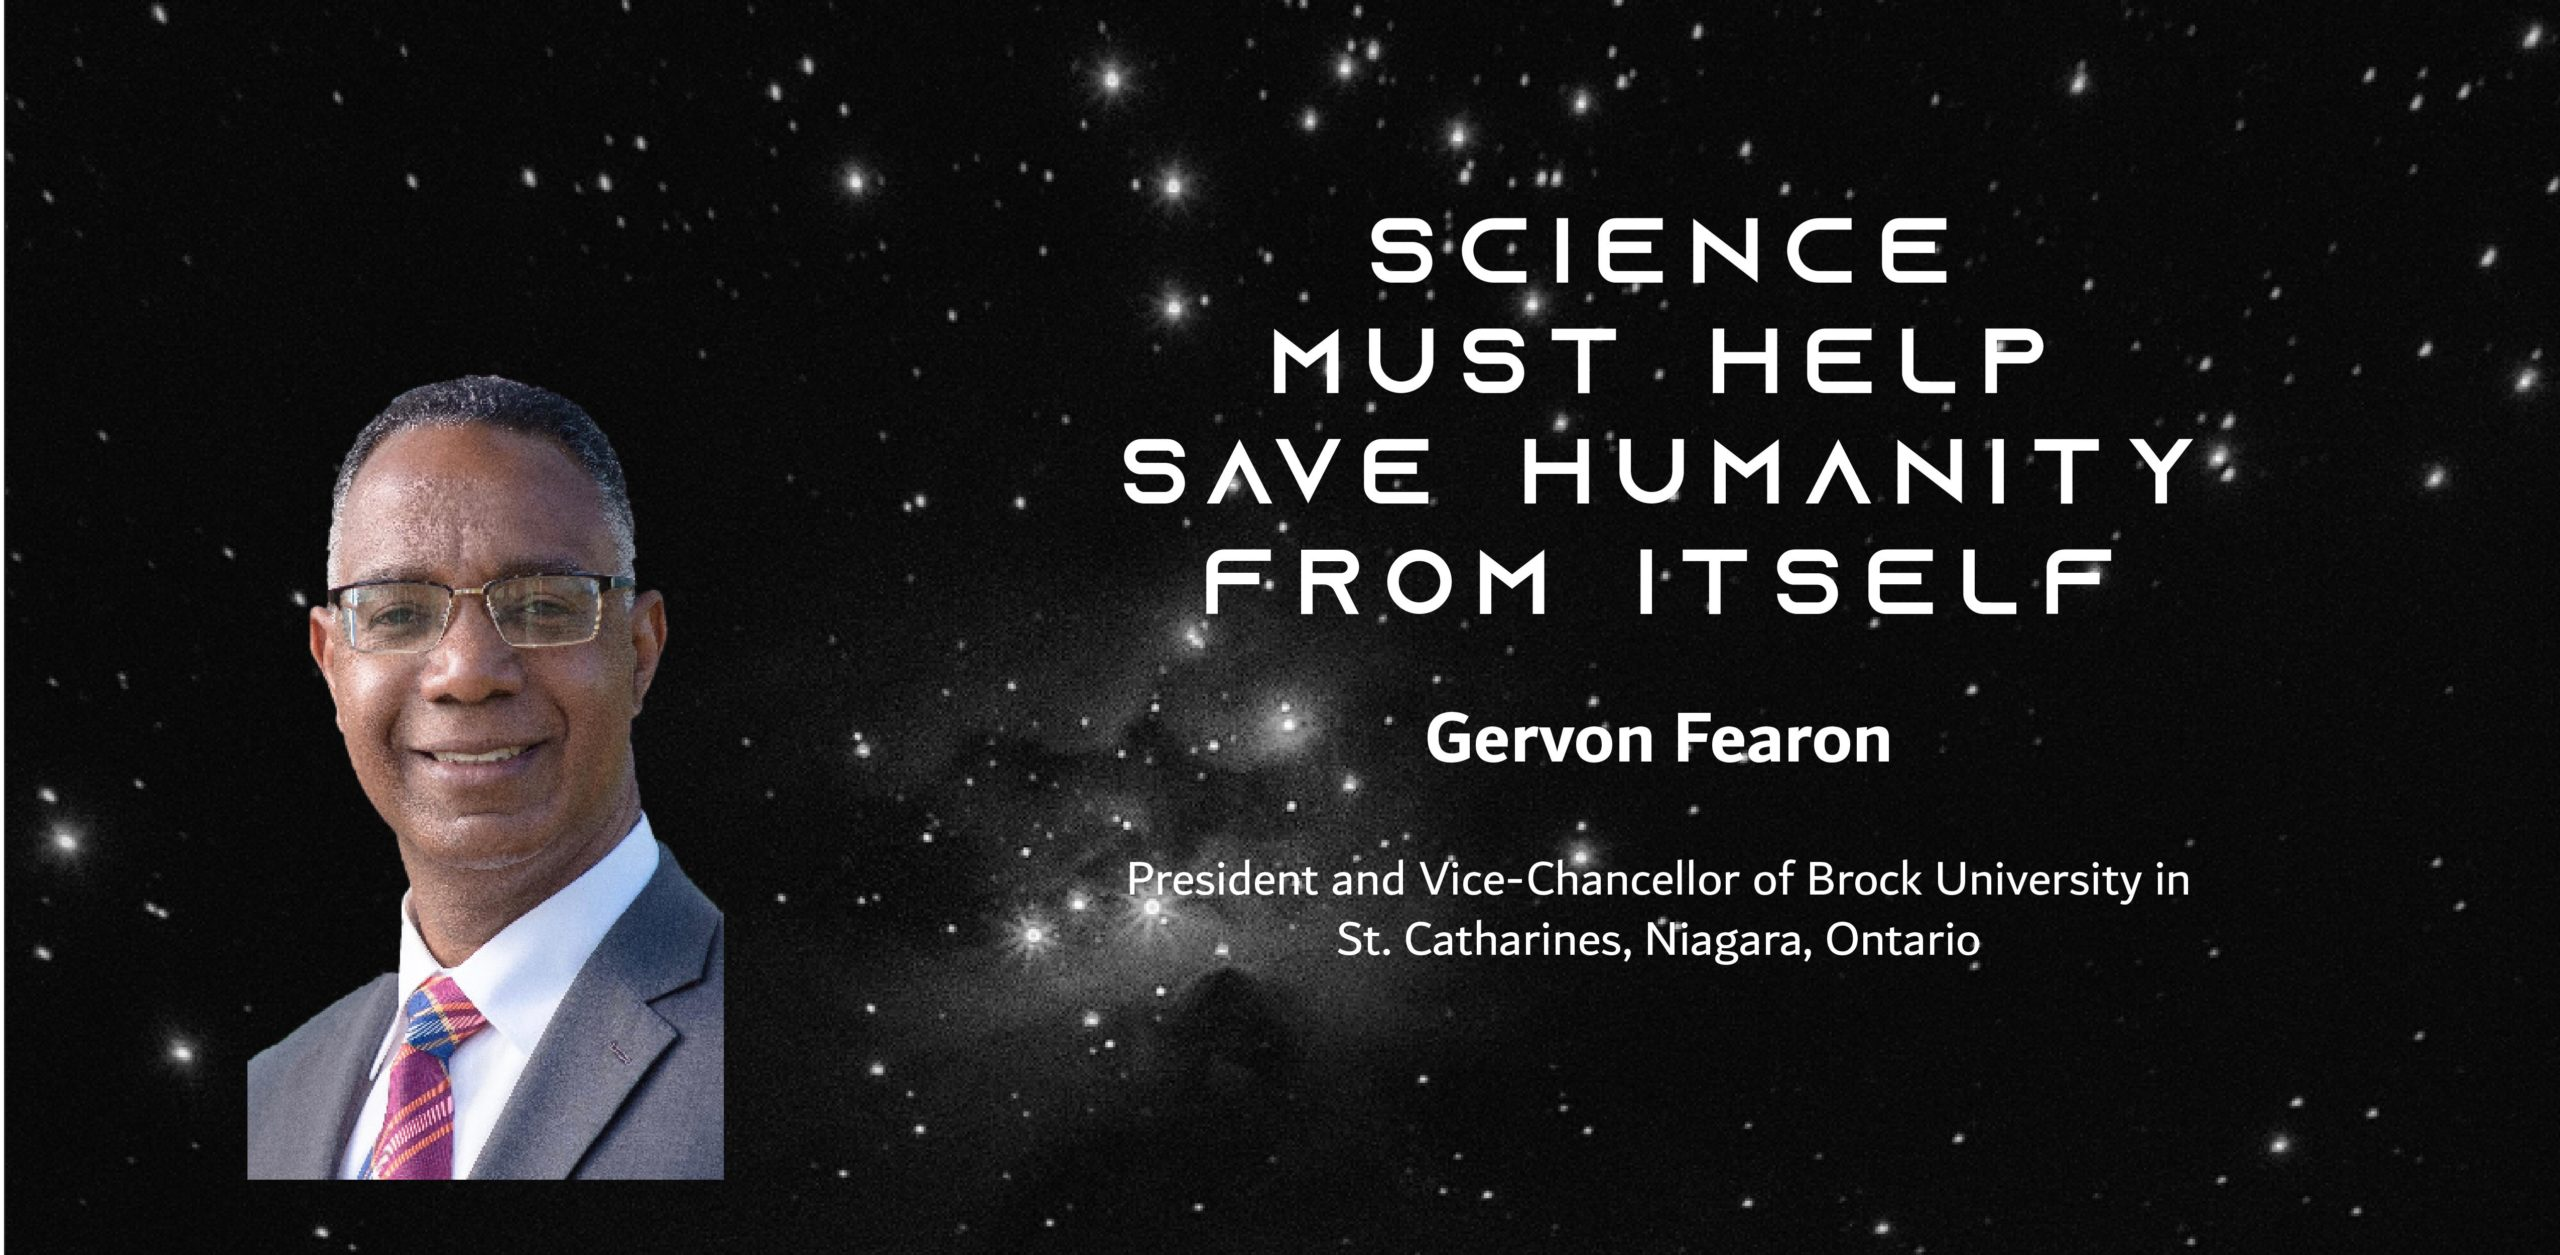 A photo of a black man in a suit on a starry sky with the text: Science must help save humanity from itself By Gervan Fearon President and Vice-Chancellor of Brock University in St. Catharines, Niagara, Ontario